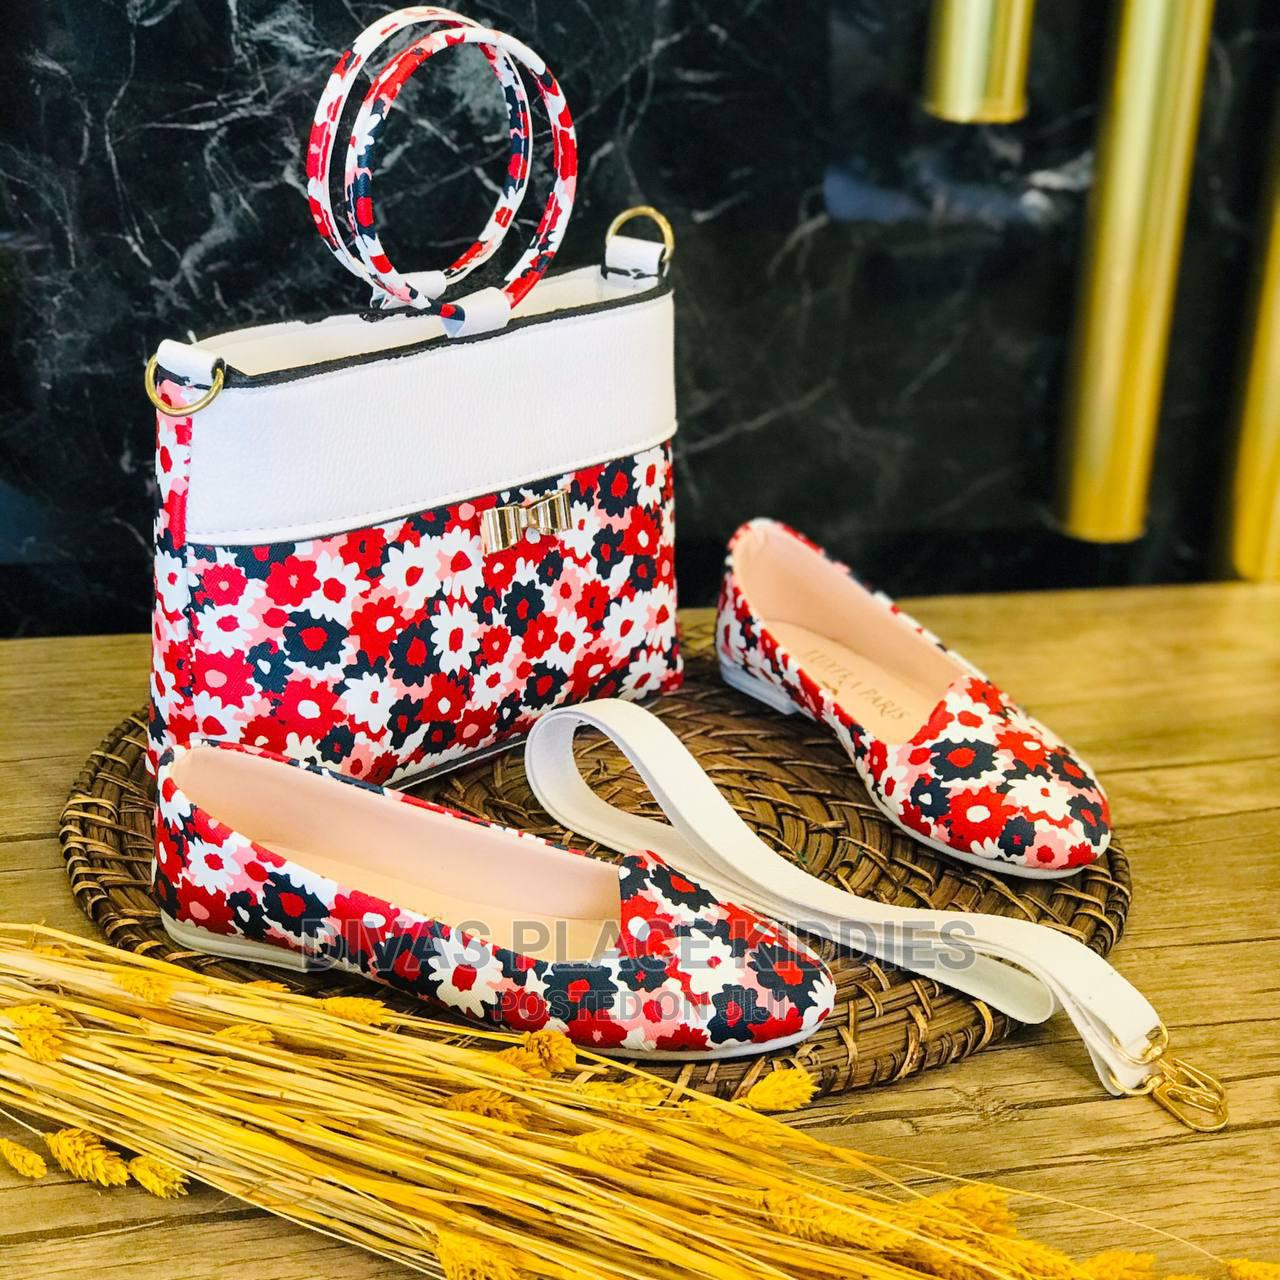 Kiddies Fashion Shoes and Bags